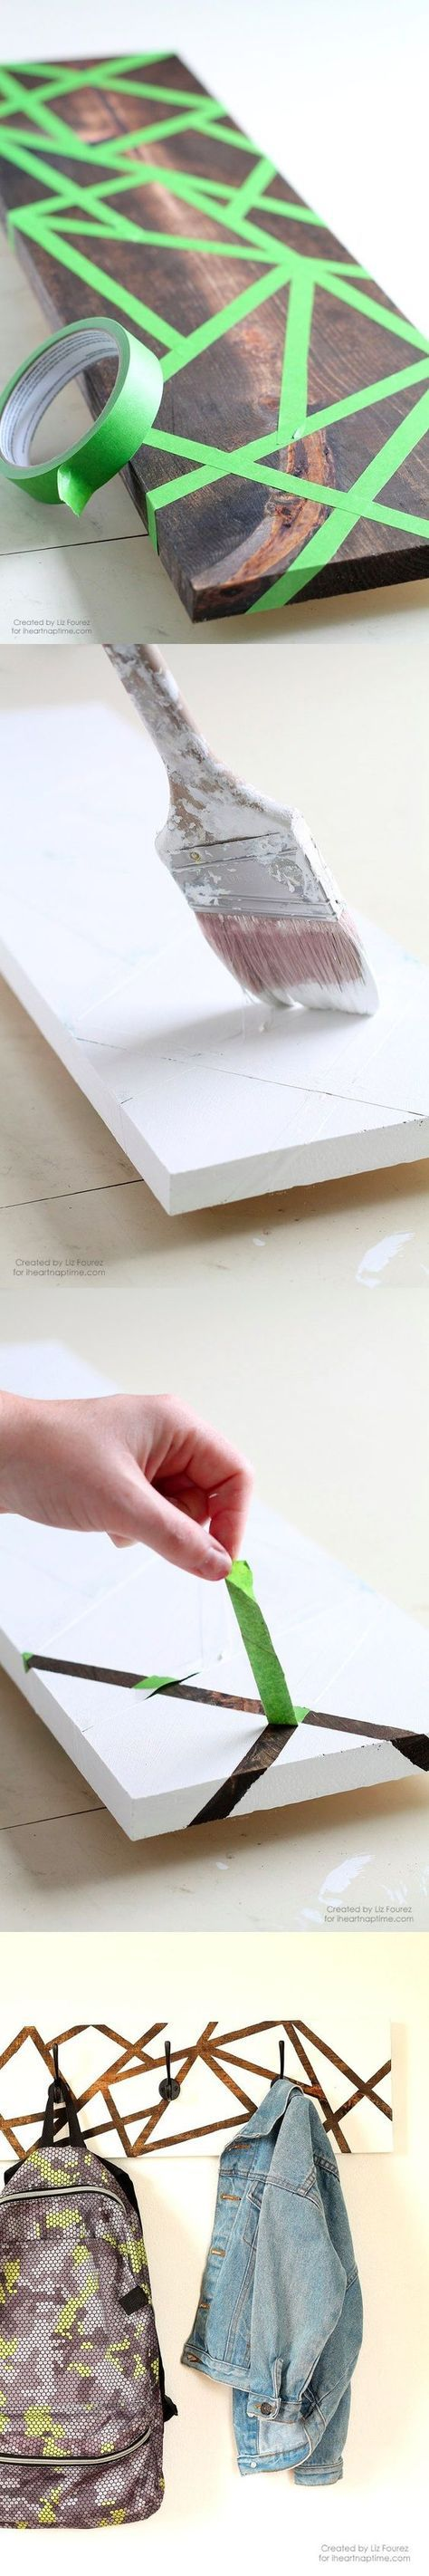 Photo of 25 Simple DIY Projects – Making Diyselber